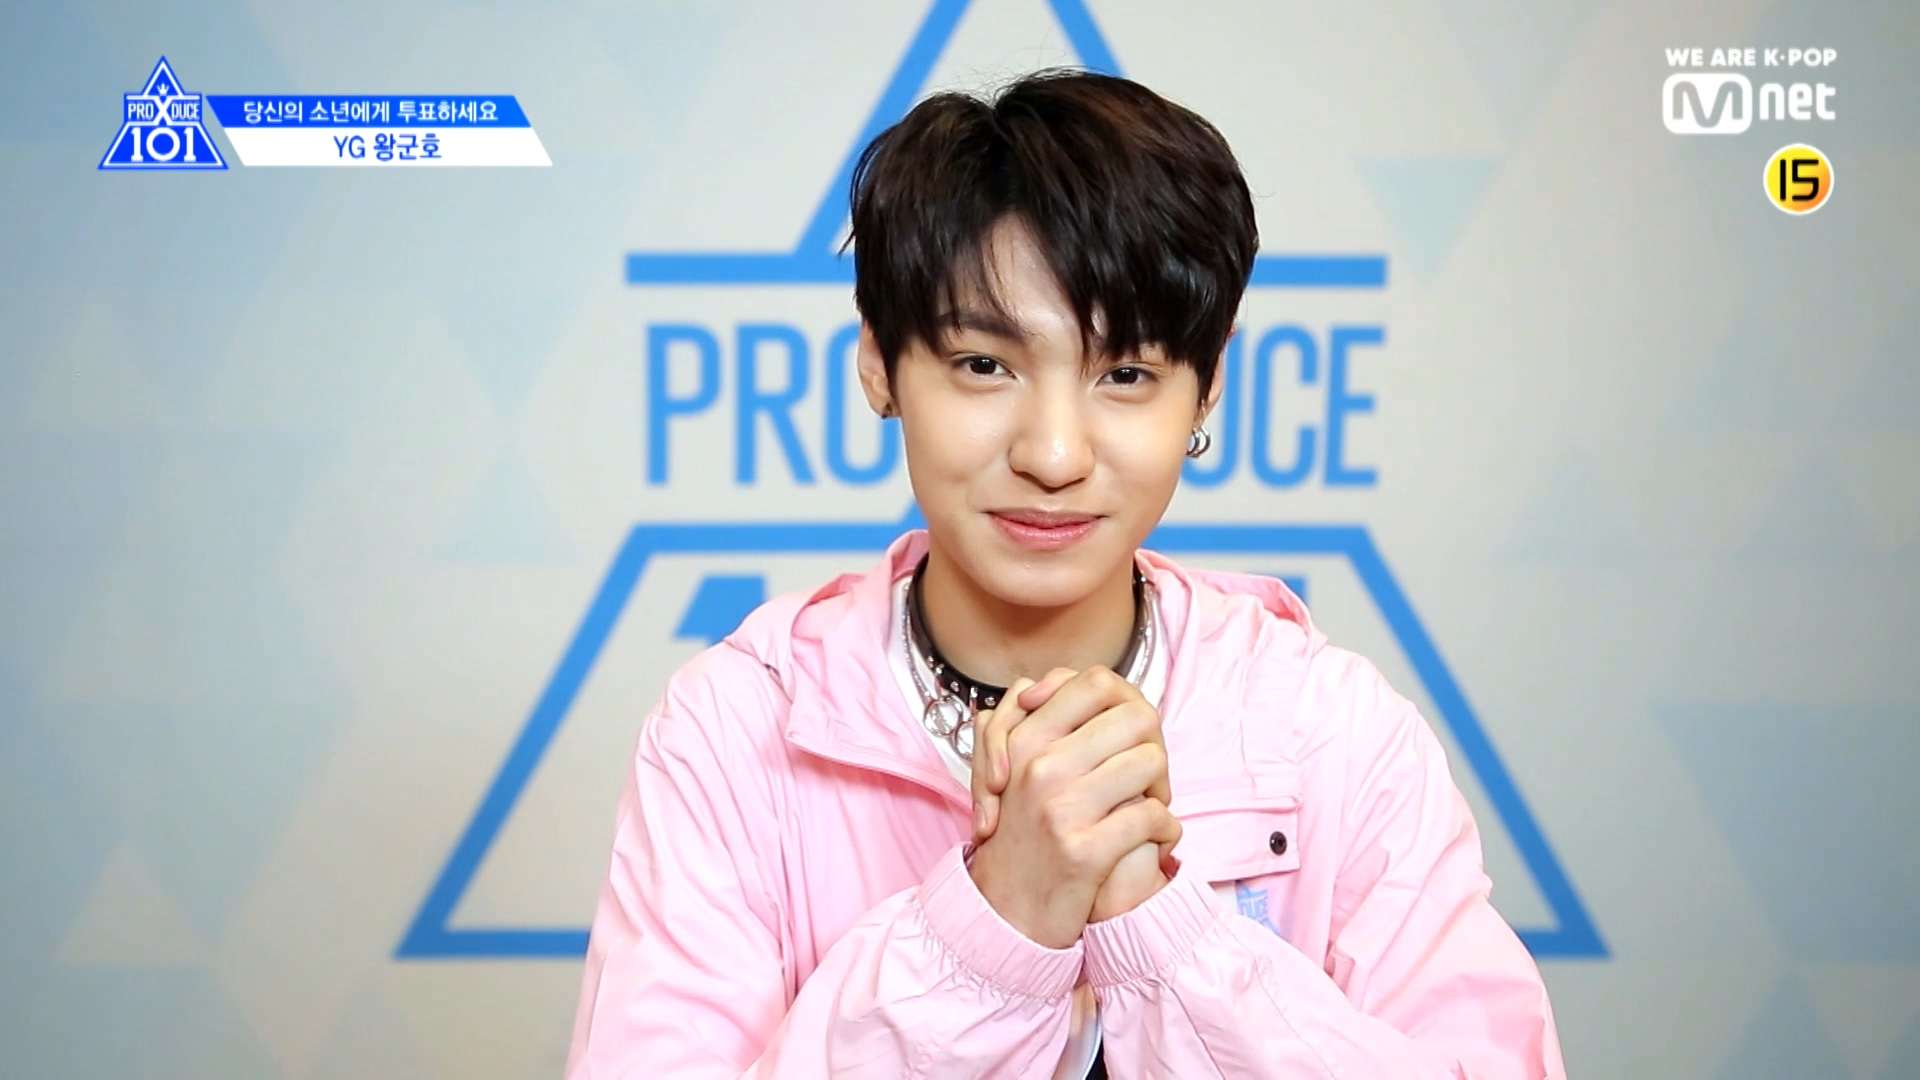 [PRODUCE X 101] EYE CONTACT CHALLENGE l WANG JYUN HAO(YG)